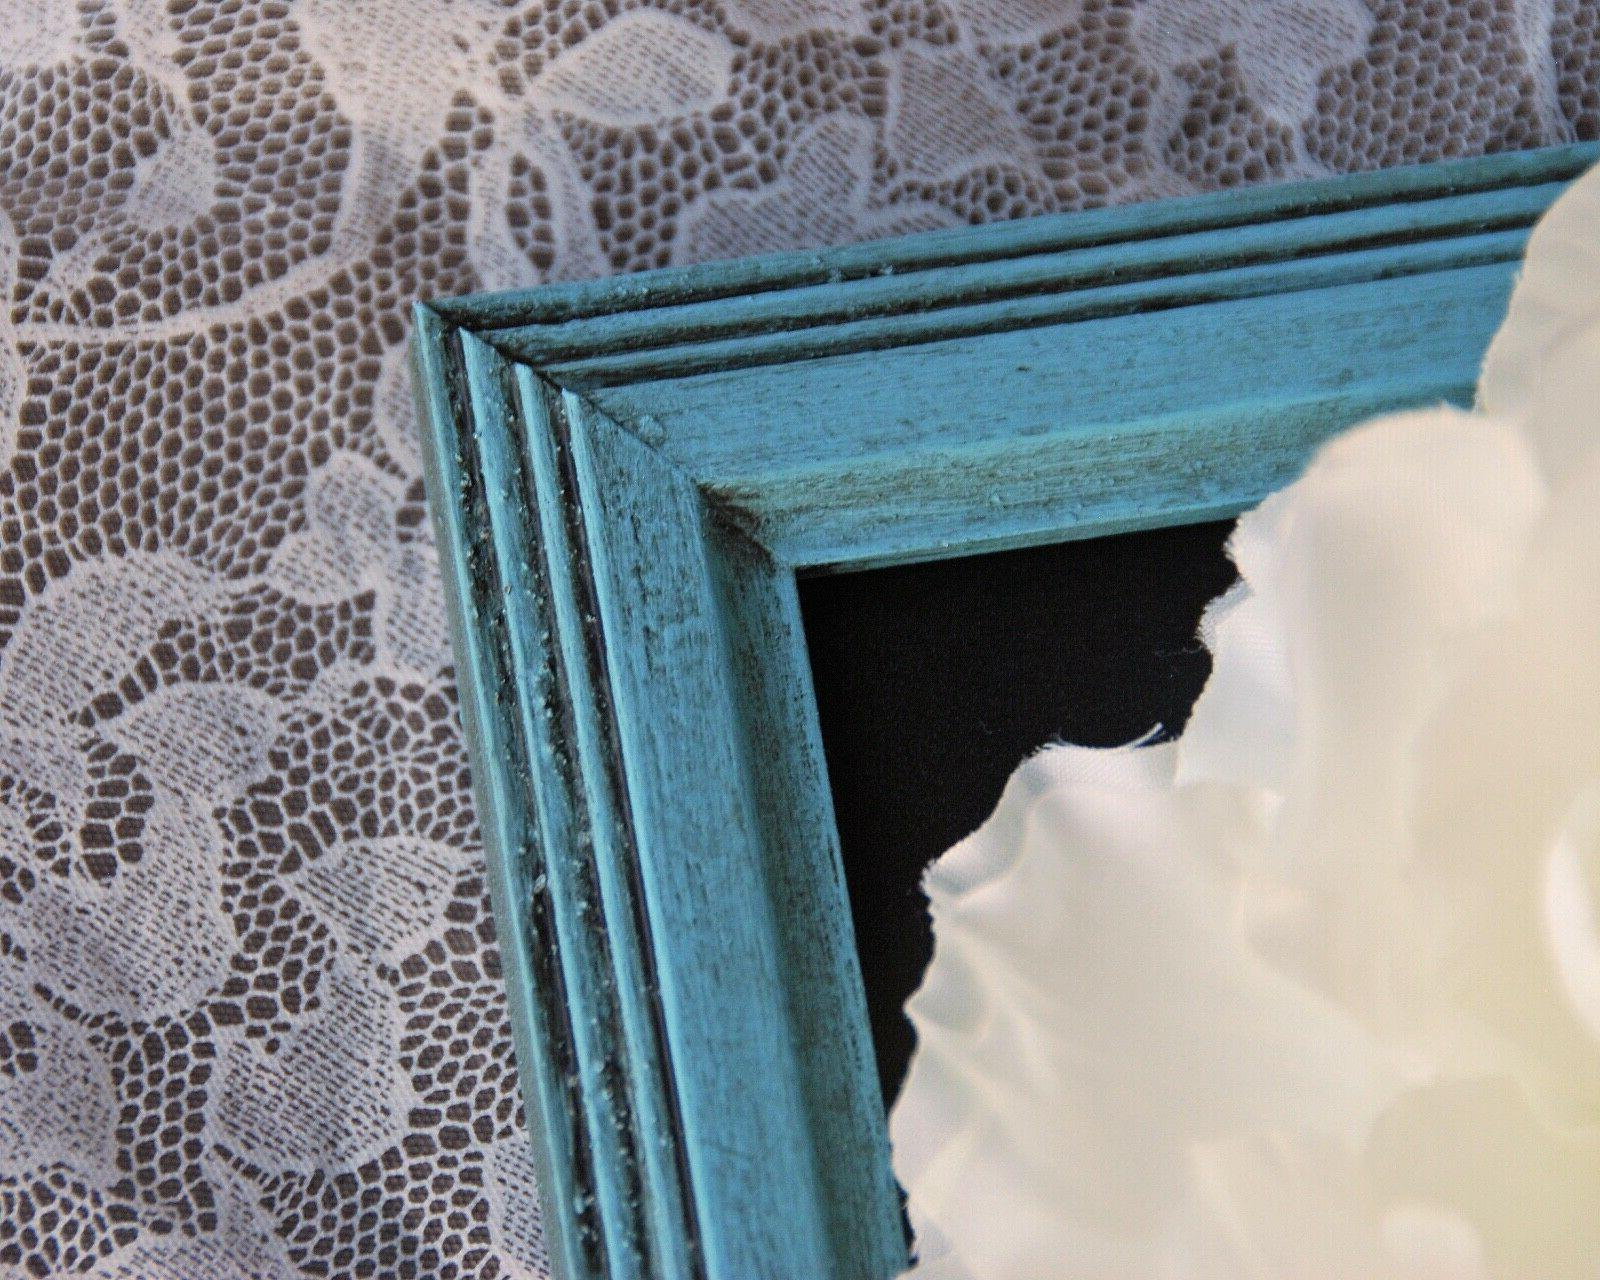 Small blue chalkboard table decorations